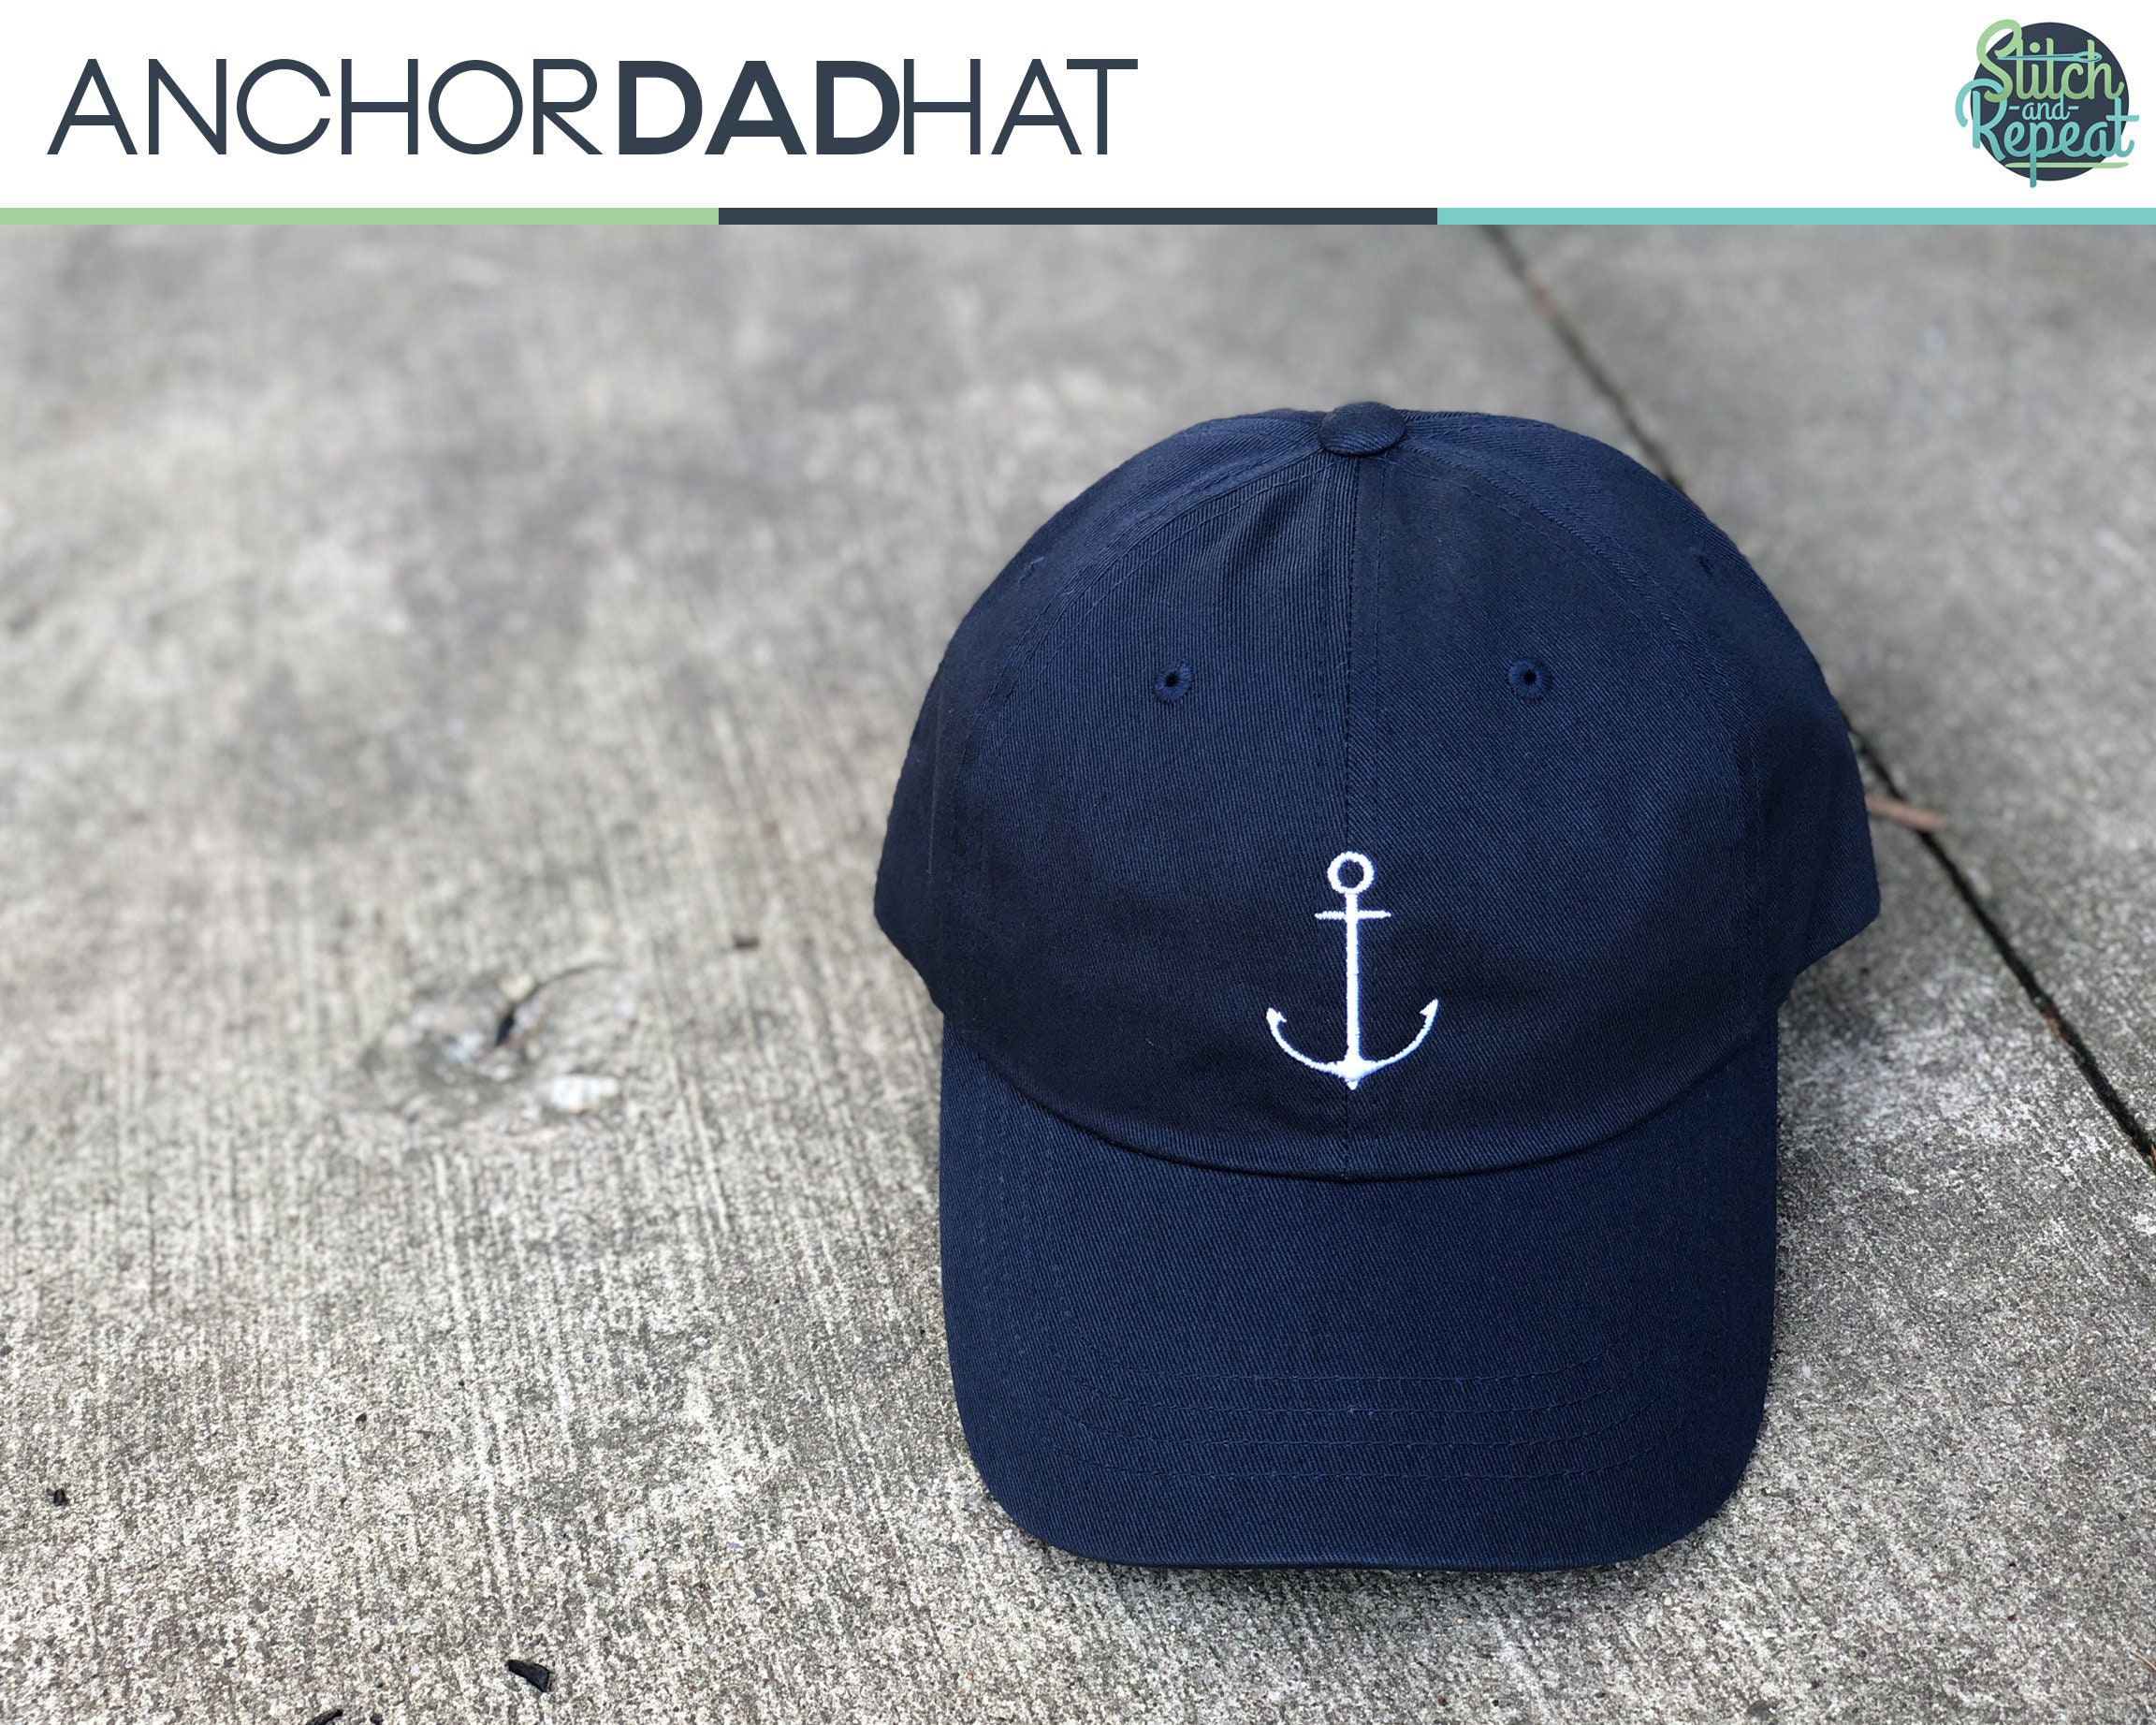 729552604 Anchor Dad Hat, Ship, Ocean, Geek, Dad Hat, Embroidered Hat, Custom  Embroidery, Custom Hats